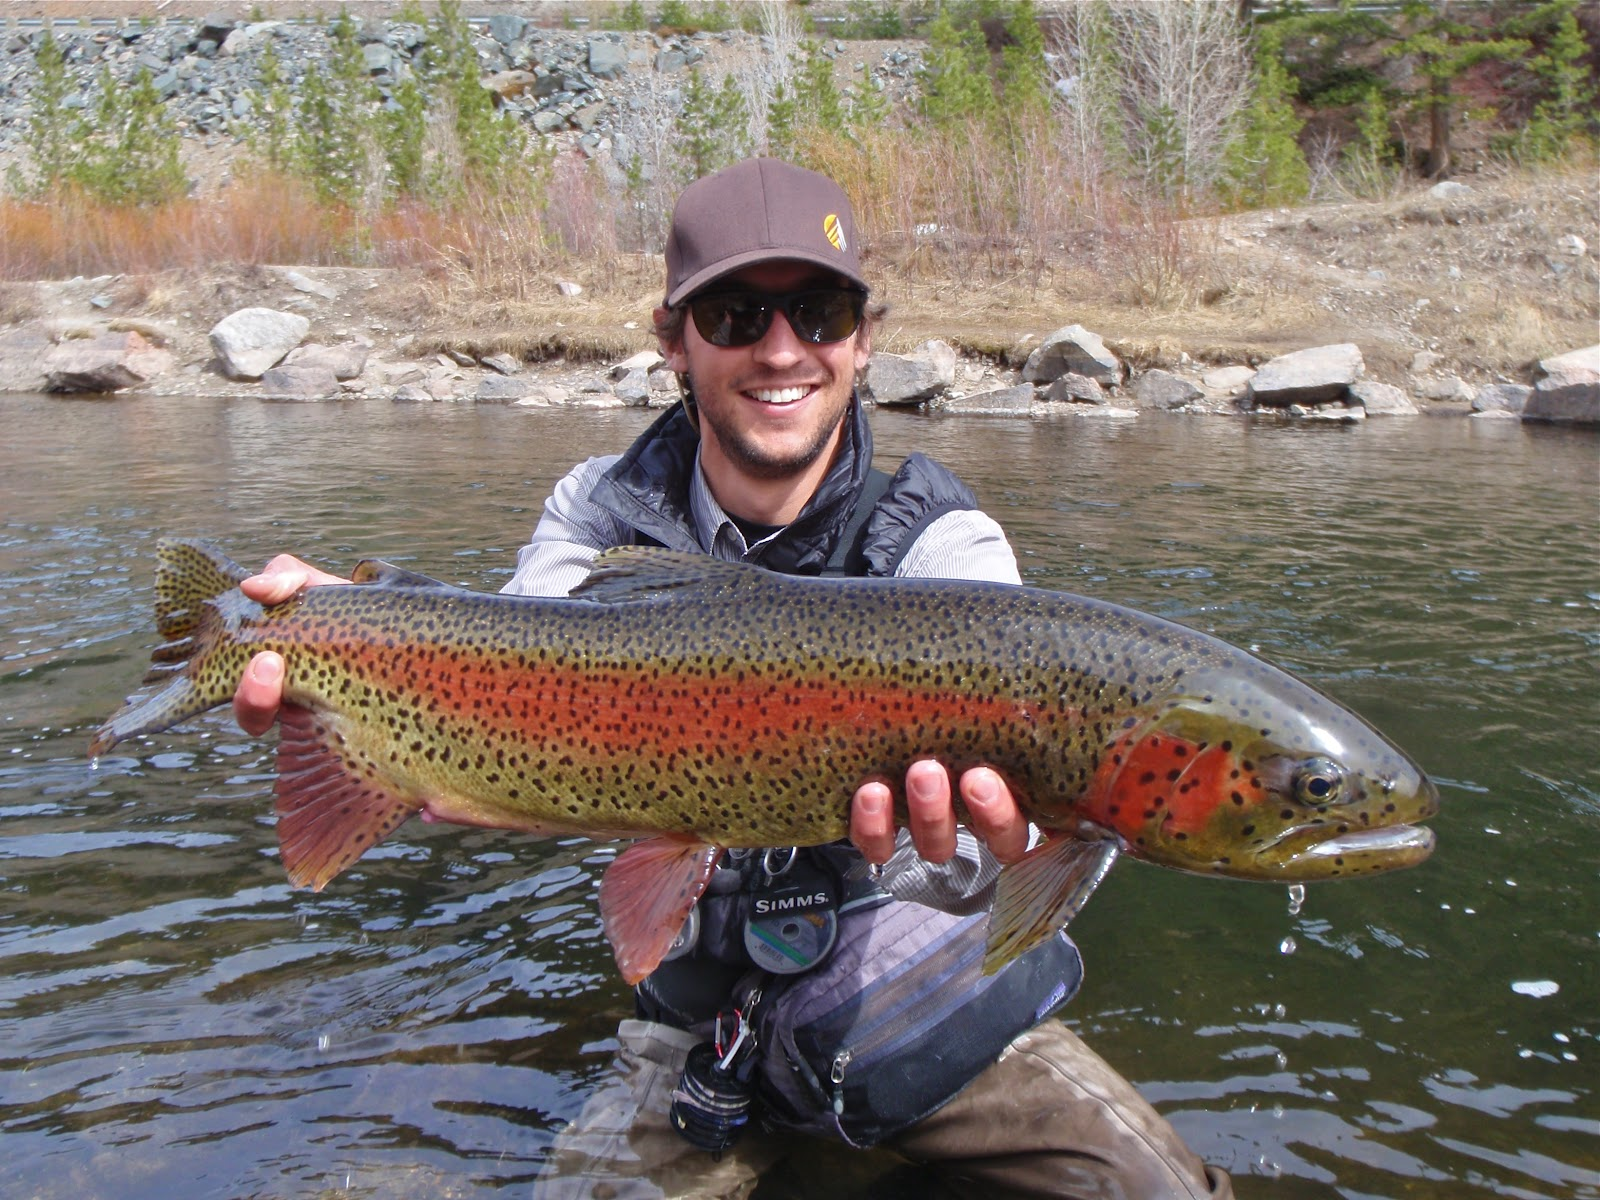 taylor river fishing report Colorado Fly Fishing Reports: A Tale from the Taylor River